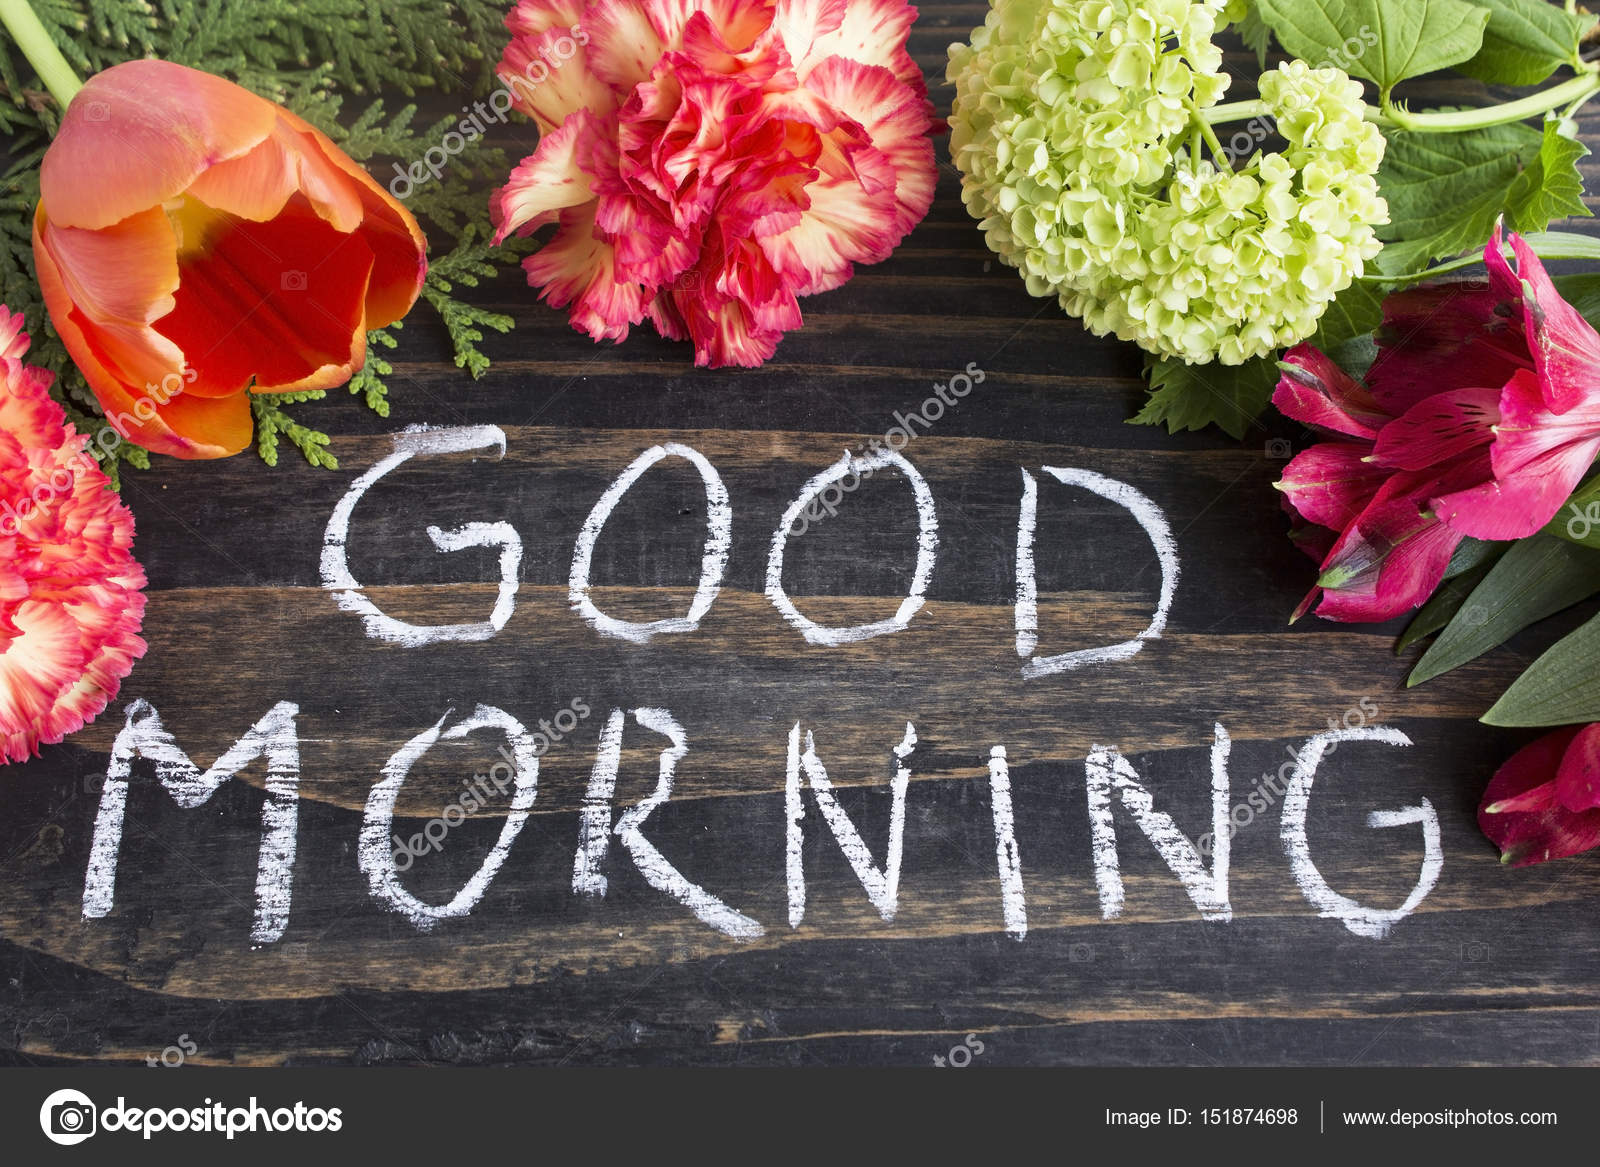 Images: good morning flowers image | Words Good Morning with